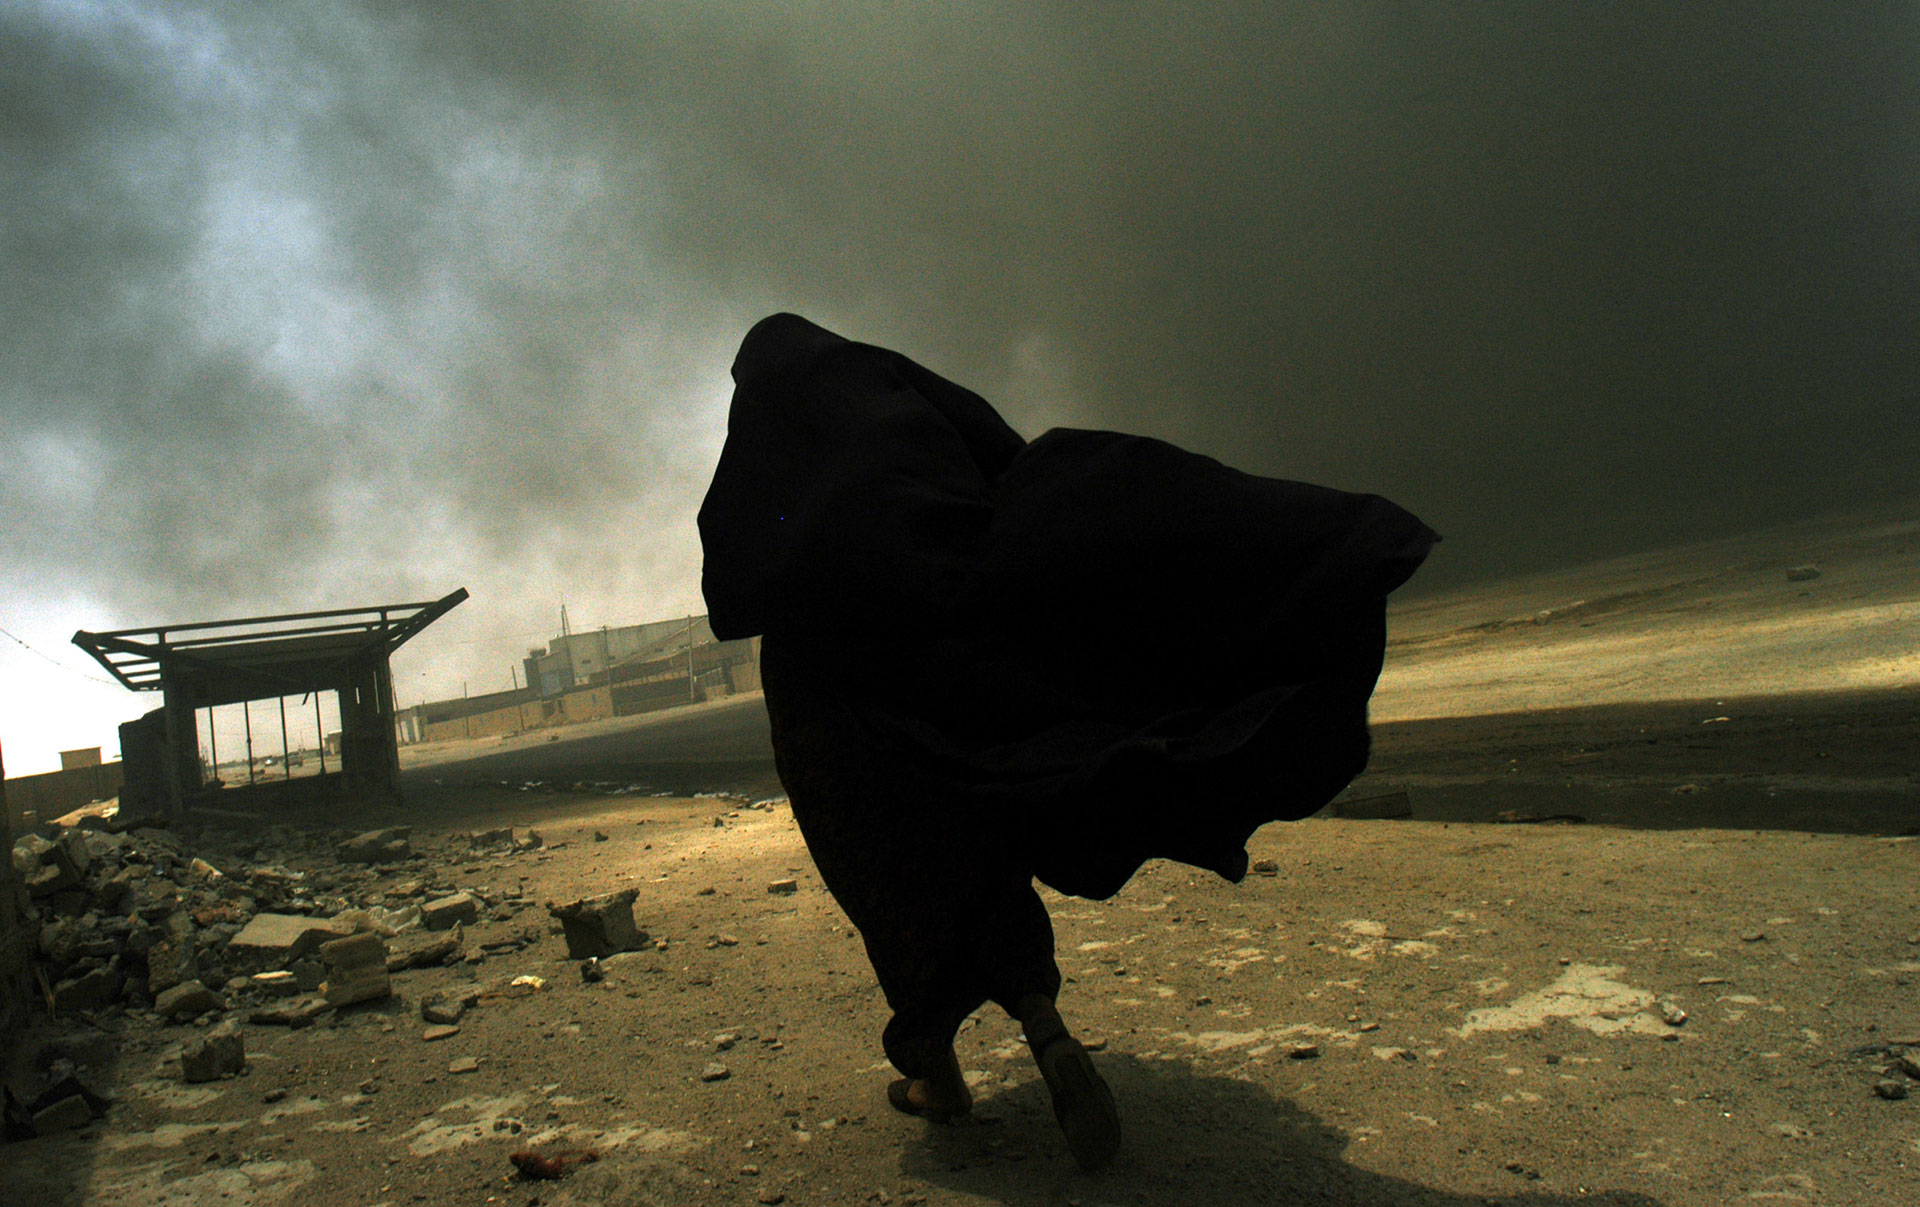 An Iraqi woman walks toward a fire at a liquid gas factory, in search of her missing husband, as fires rages across the country after the fall of Saddam Hussein in Basra, Iraqi, April 2003.